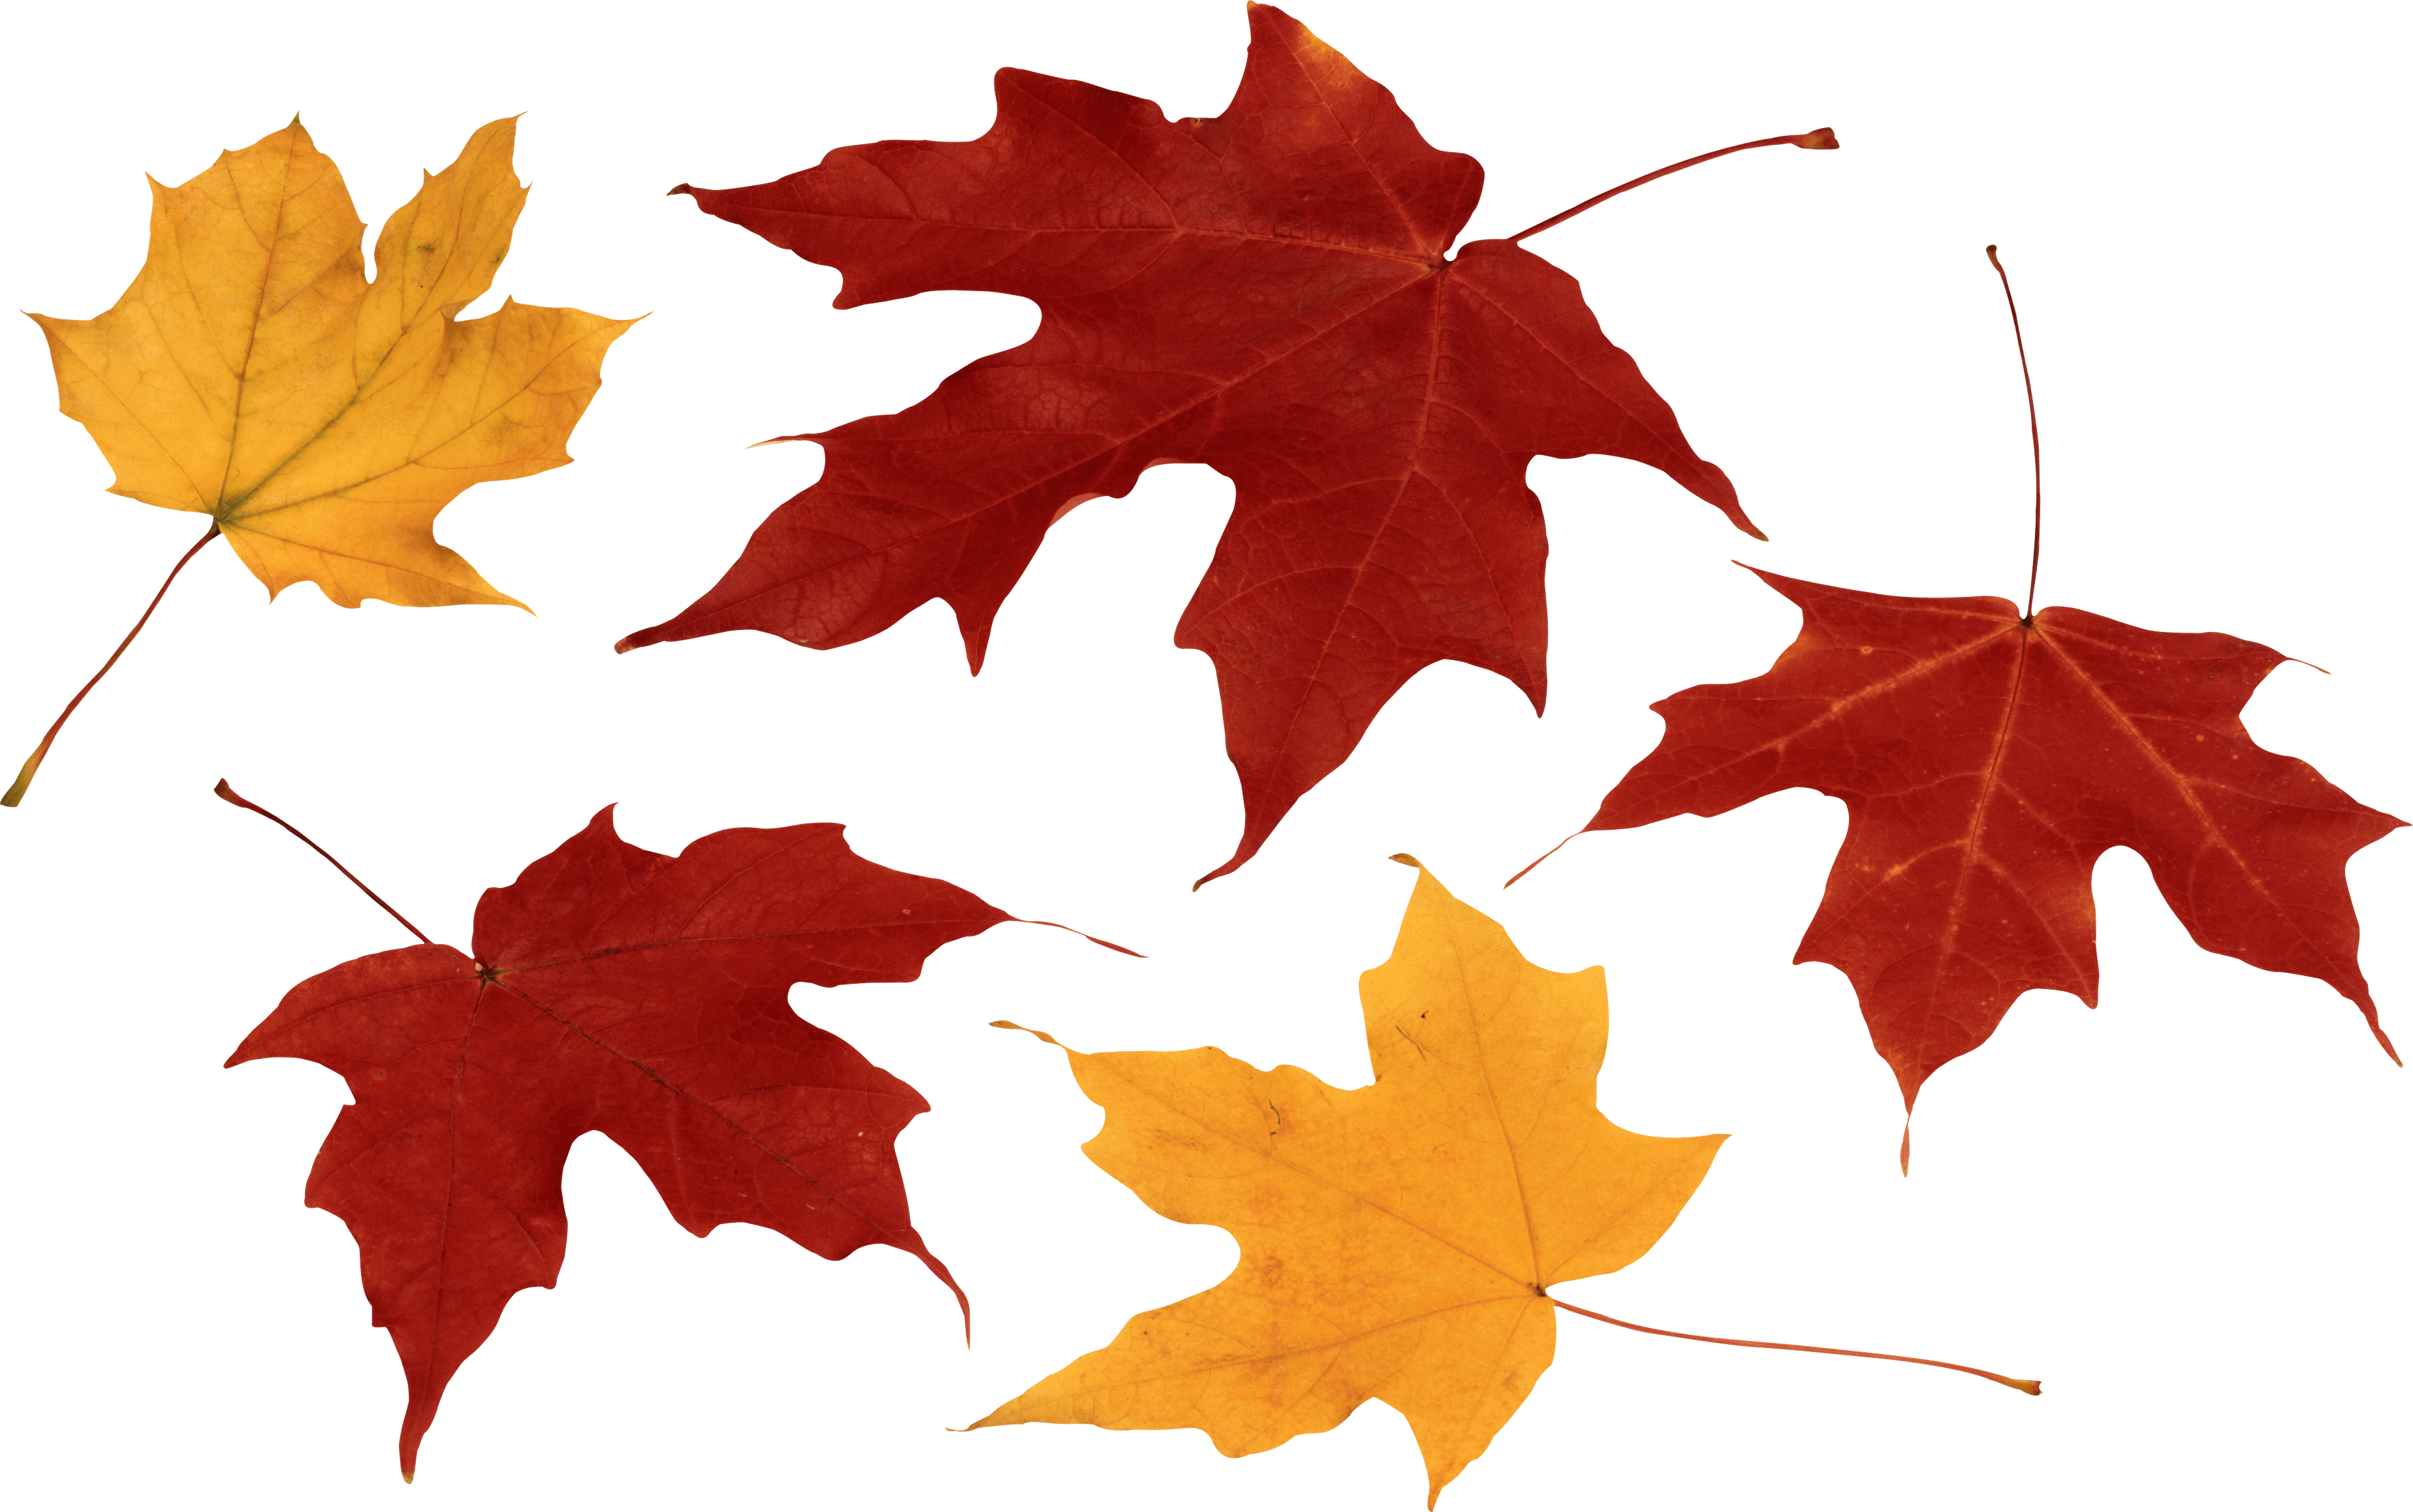 Falling leaves png transparent. Autumn images free download